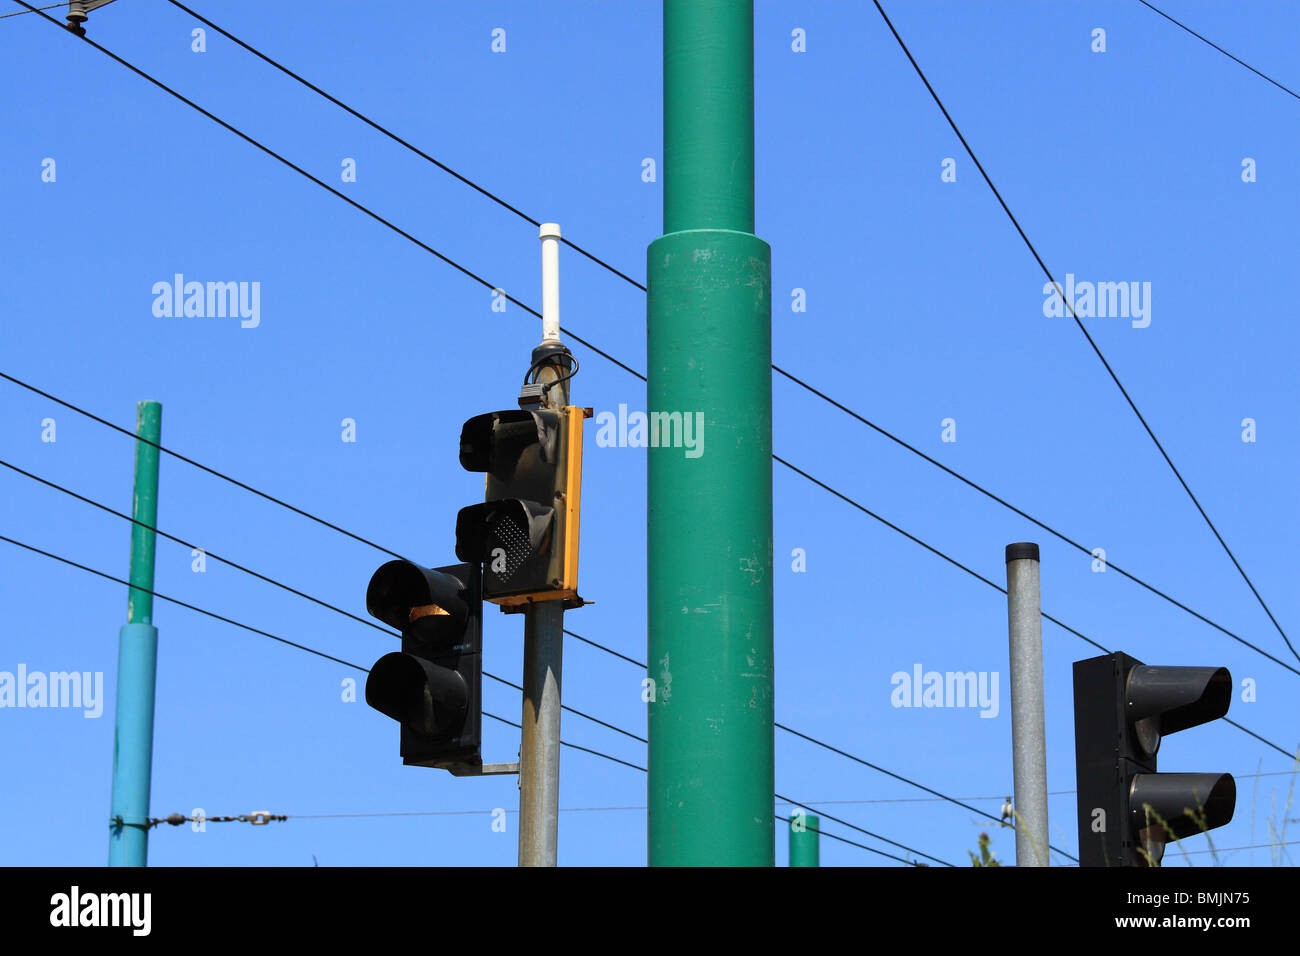 Tram Wire Stock Photos Images Alamy Traffic Light Wiring Lights And Wires Against Blue Sky Katowice Poland Image